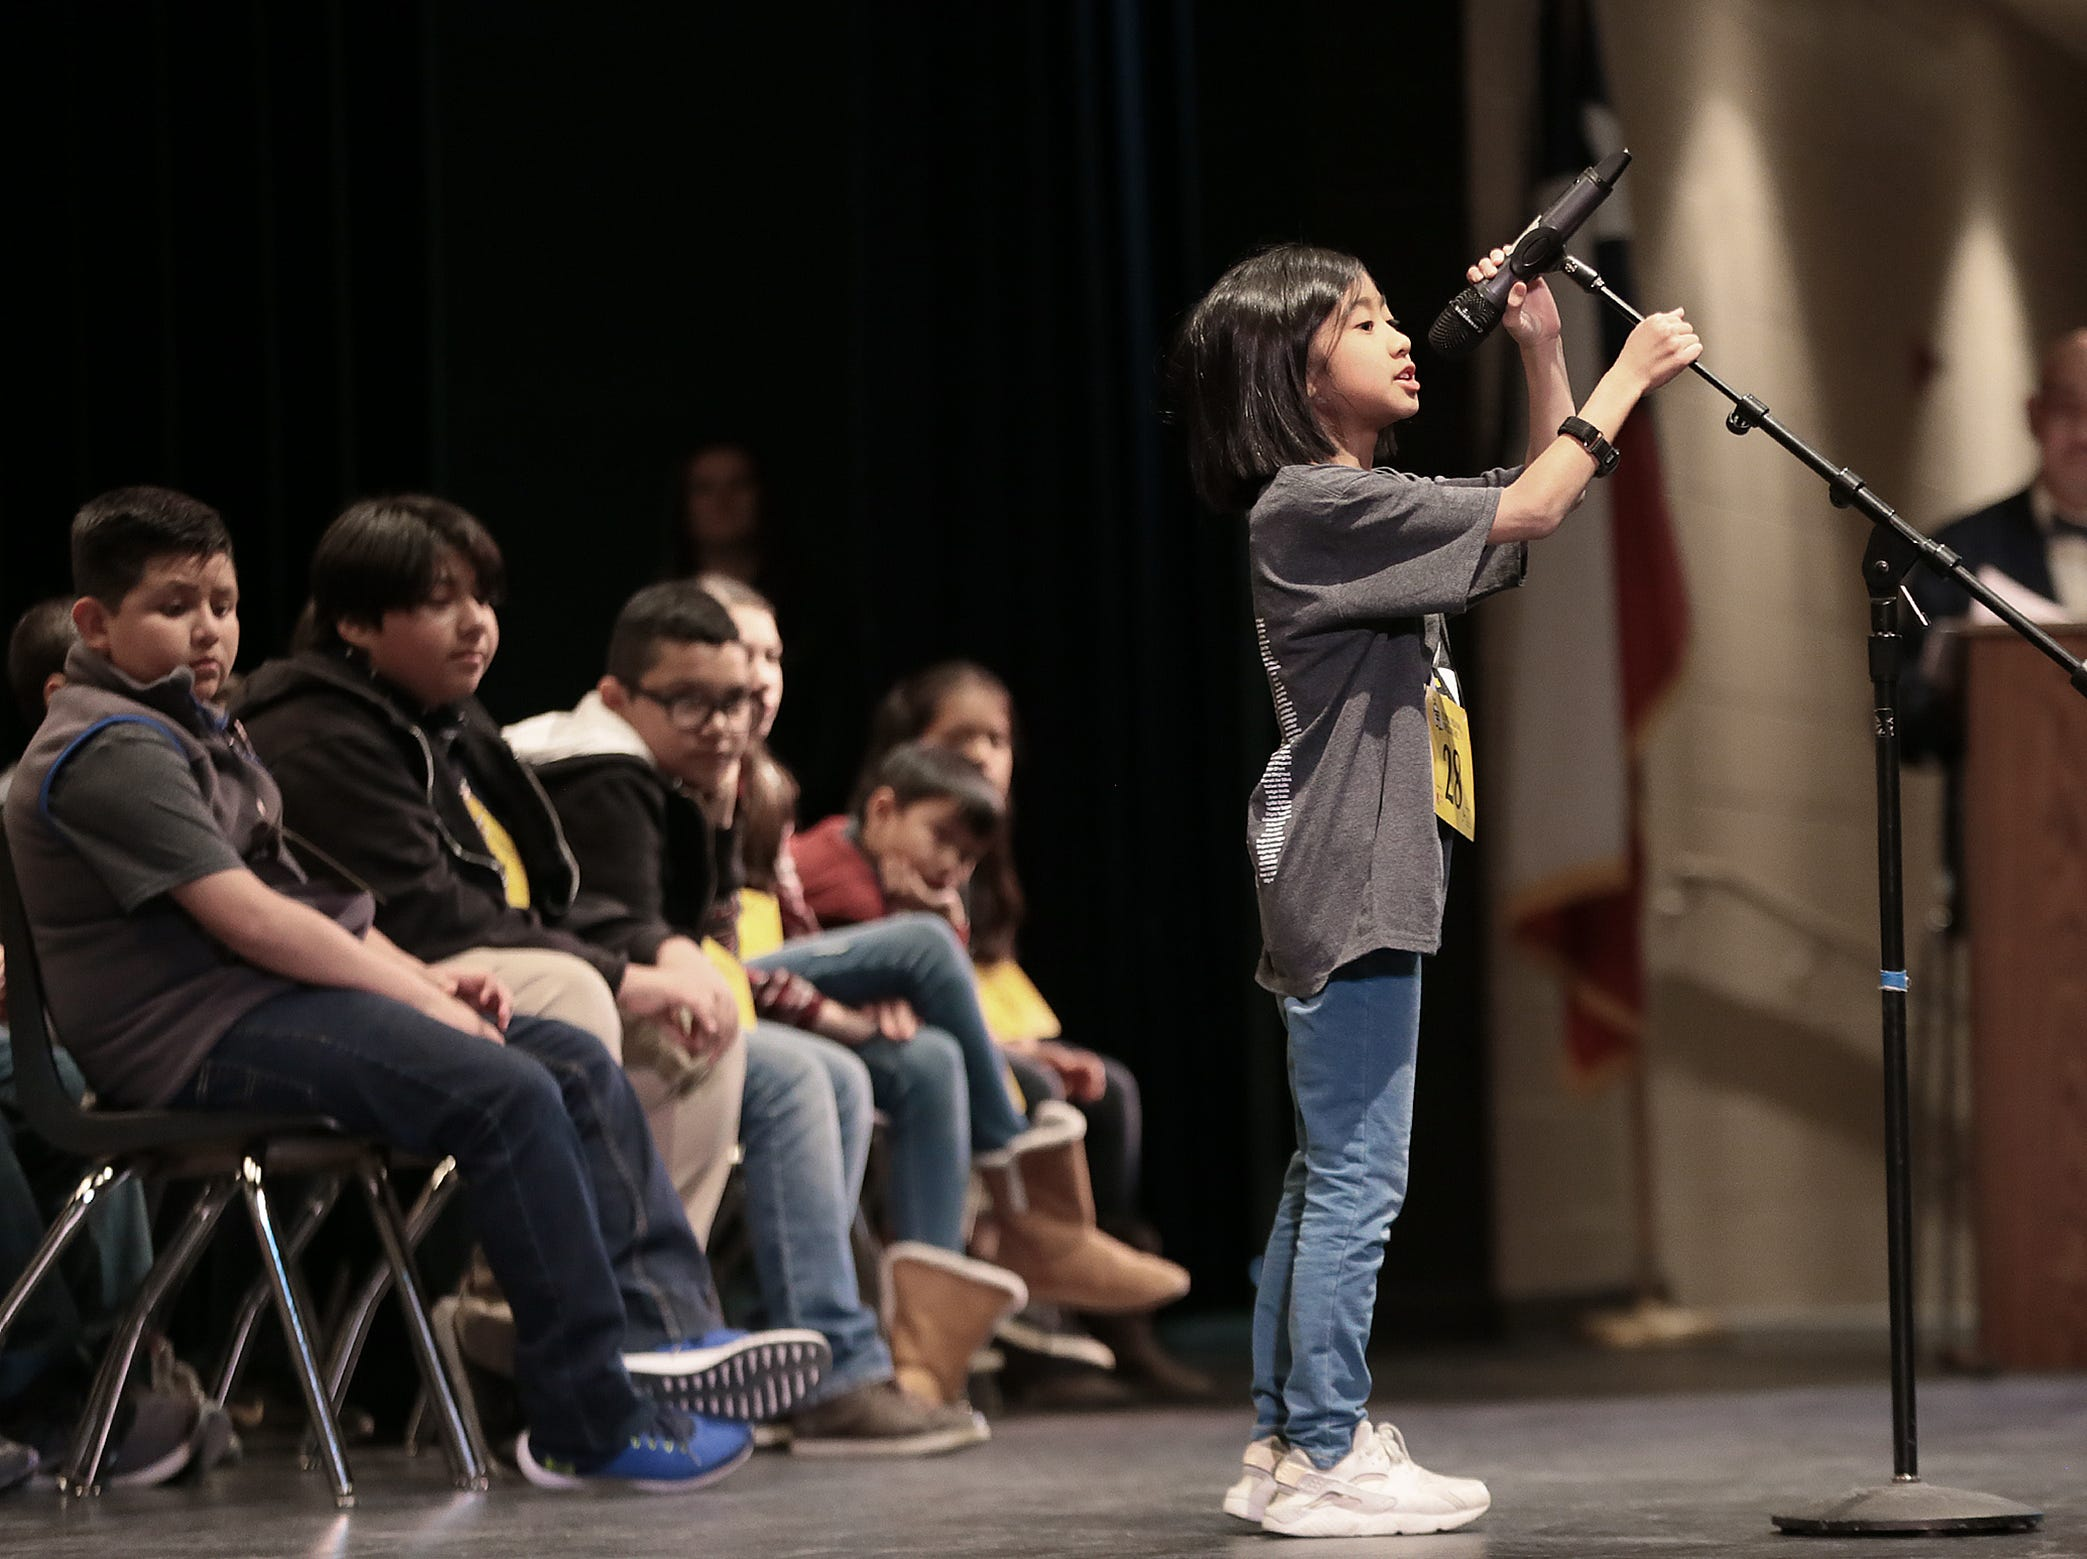 Lucienne Saranghilo reaches for the microphone as she prepares to spell at the 2019 El Paso Regional Spelling Bee Friday at Bowie High School.